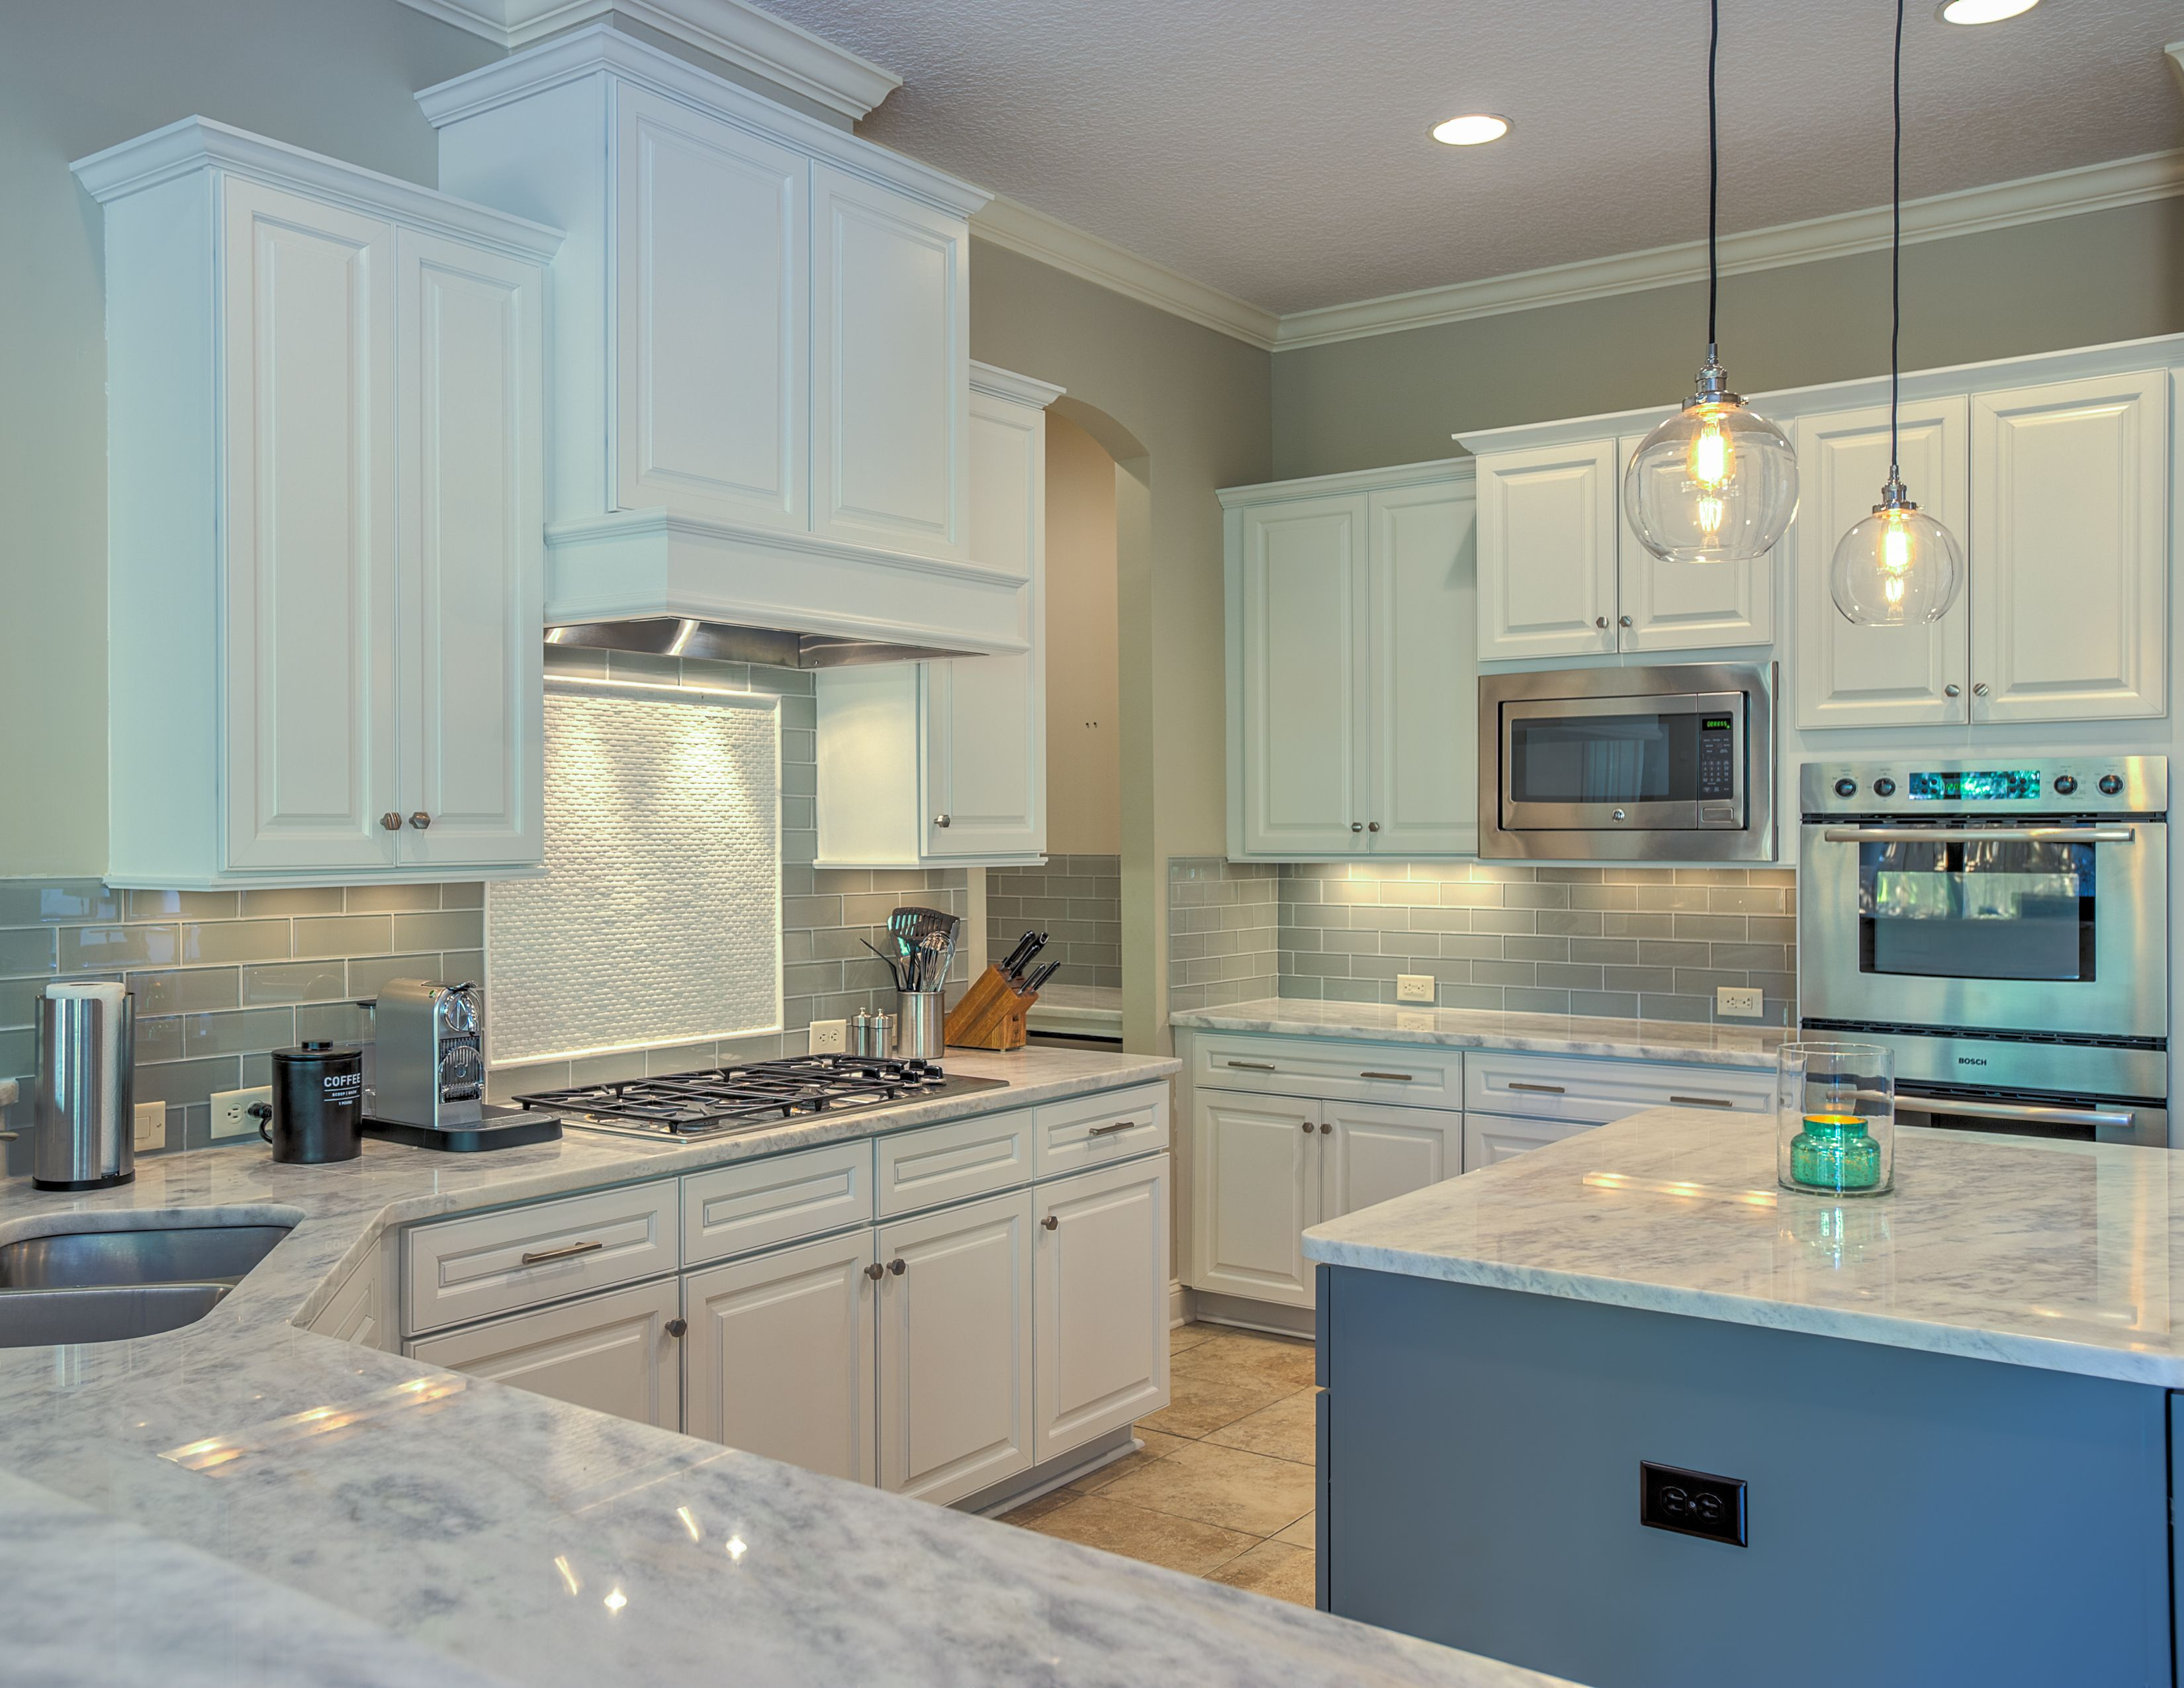 This Is One Of Our Favorite Kitchens We Ve Refinished Visit Nhance Com To Schedule A Free In Home Estimate Cabinet Refacing Kitchen Design Cabinet